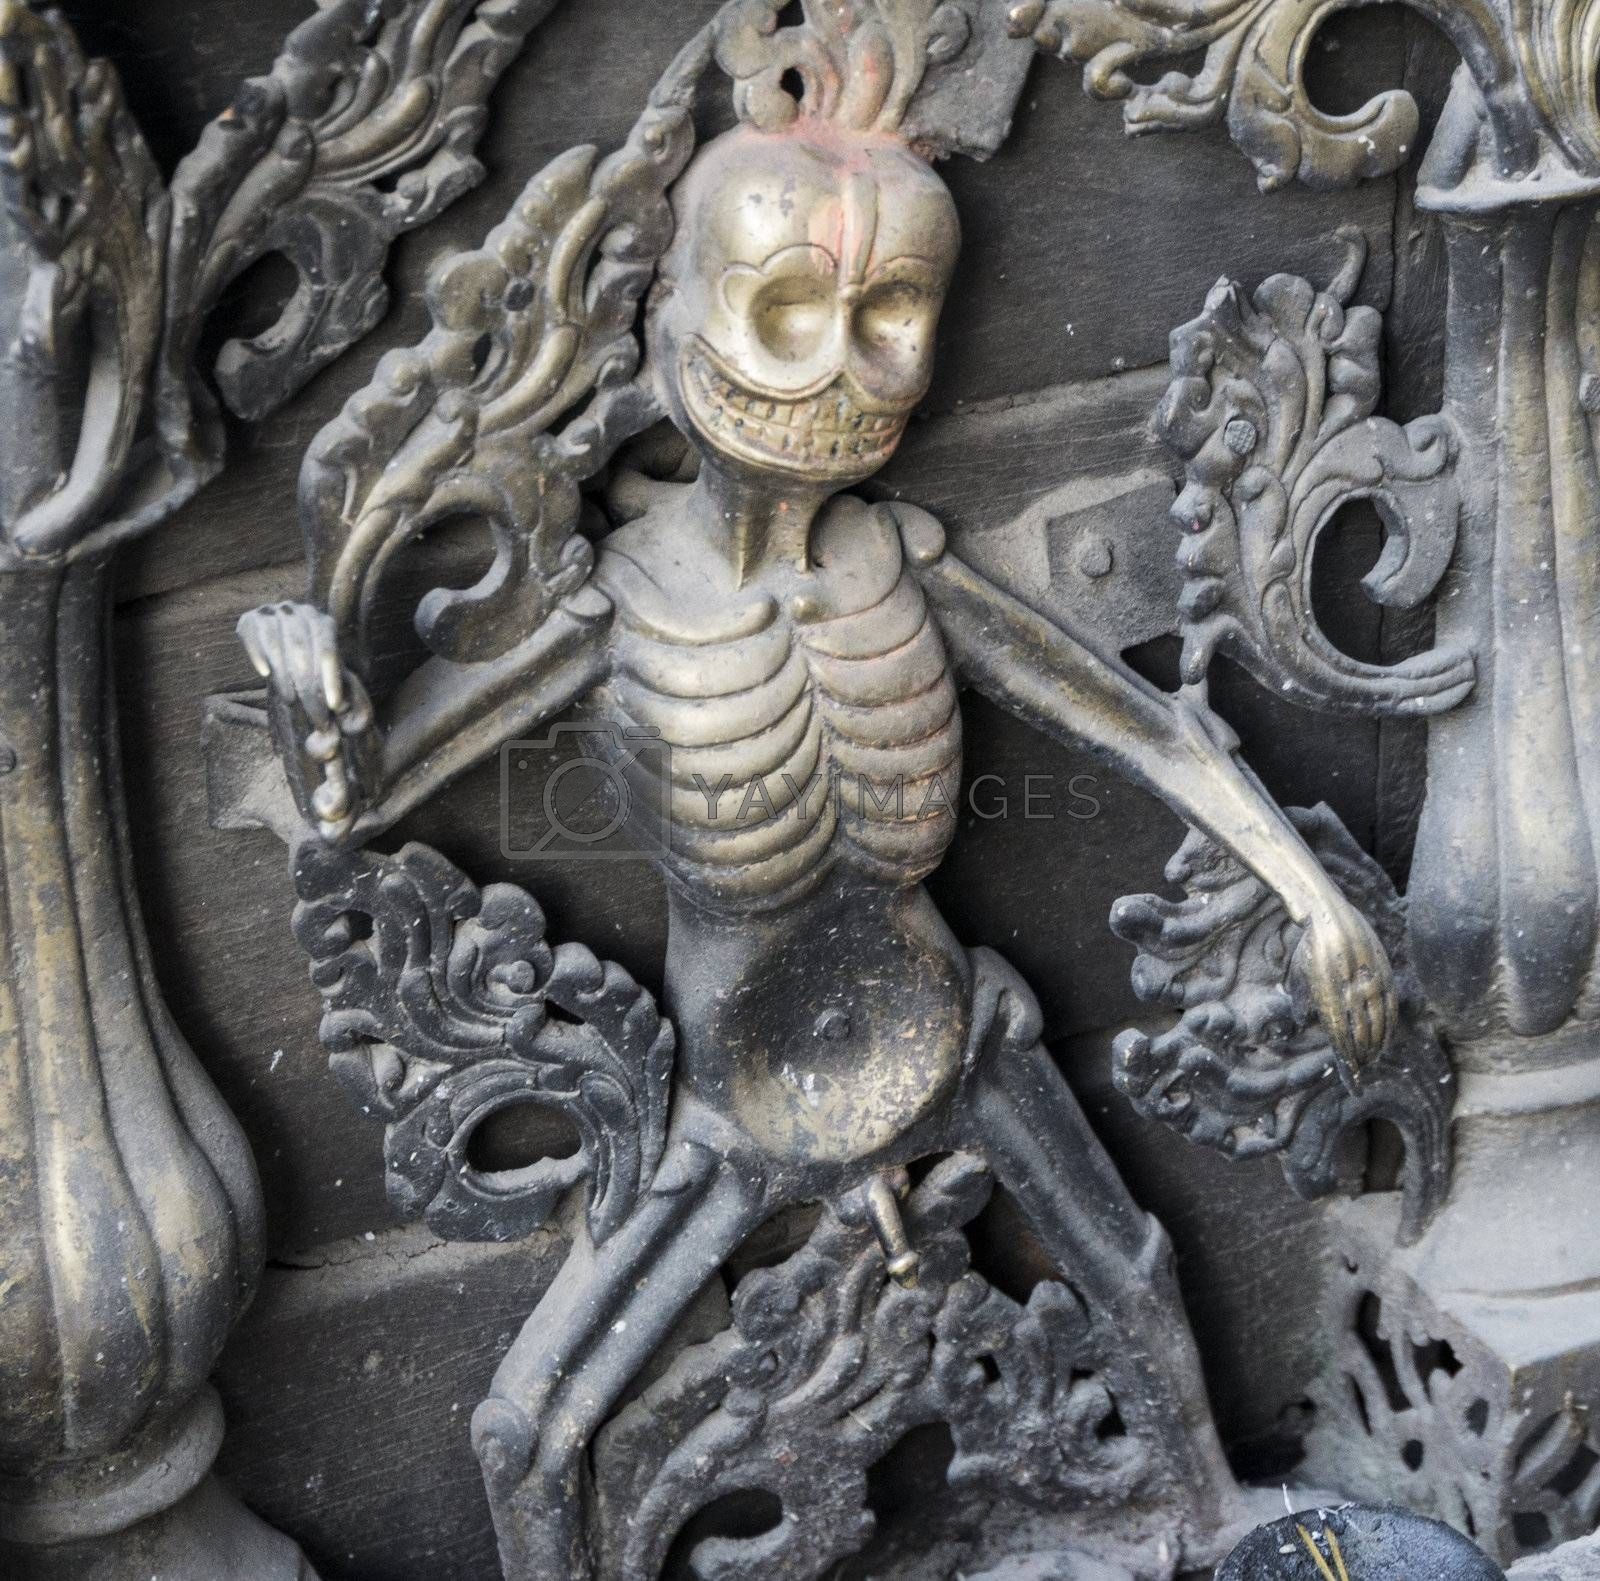 Royalty free image of metal sculpture as a symbol of death by gewoldi